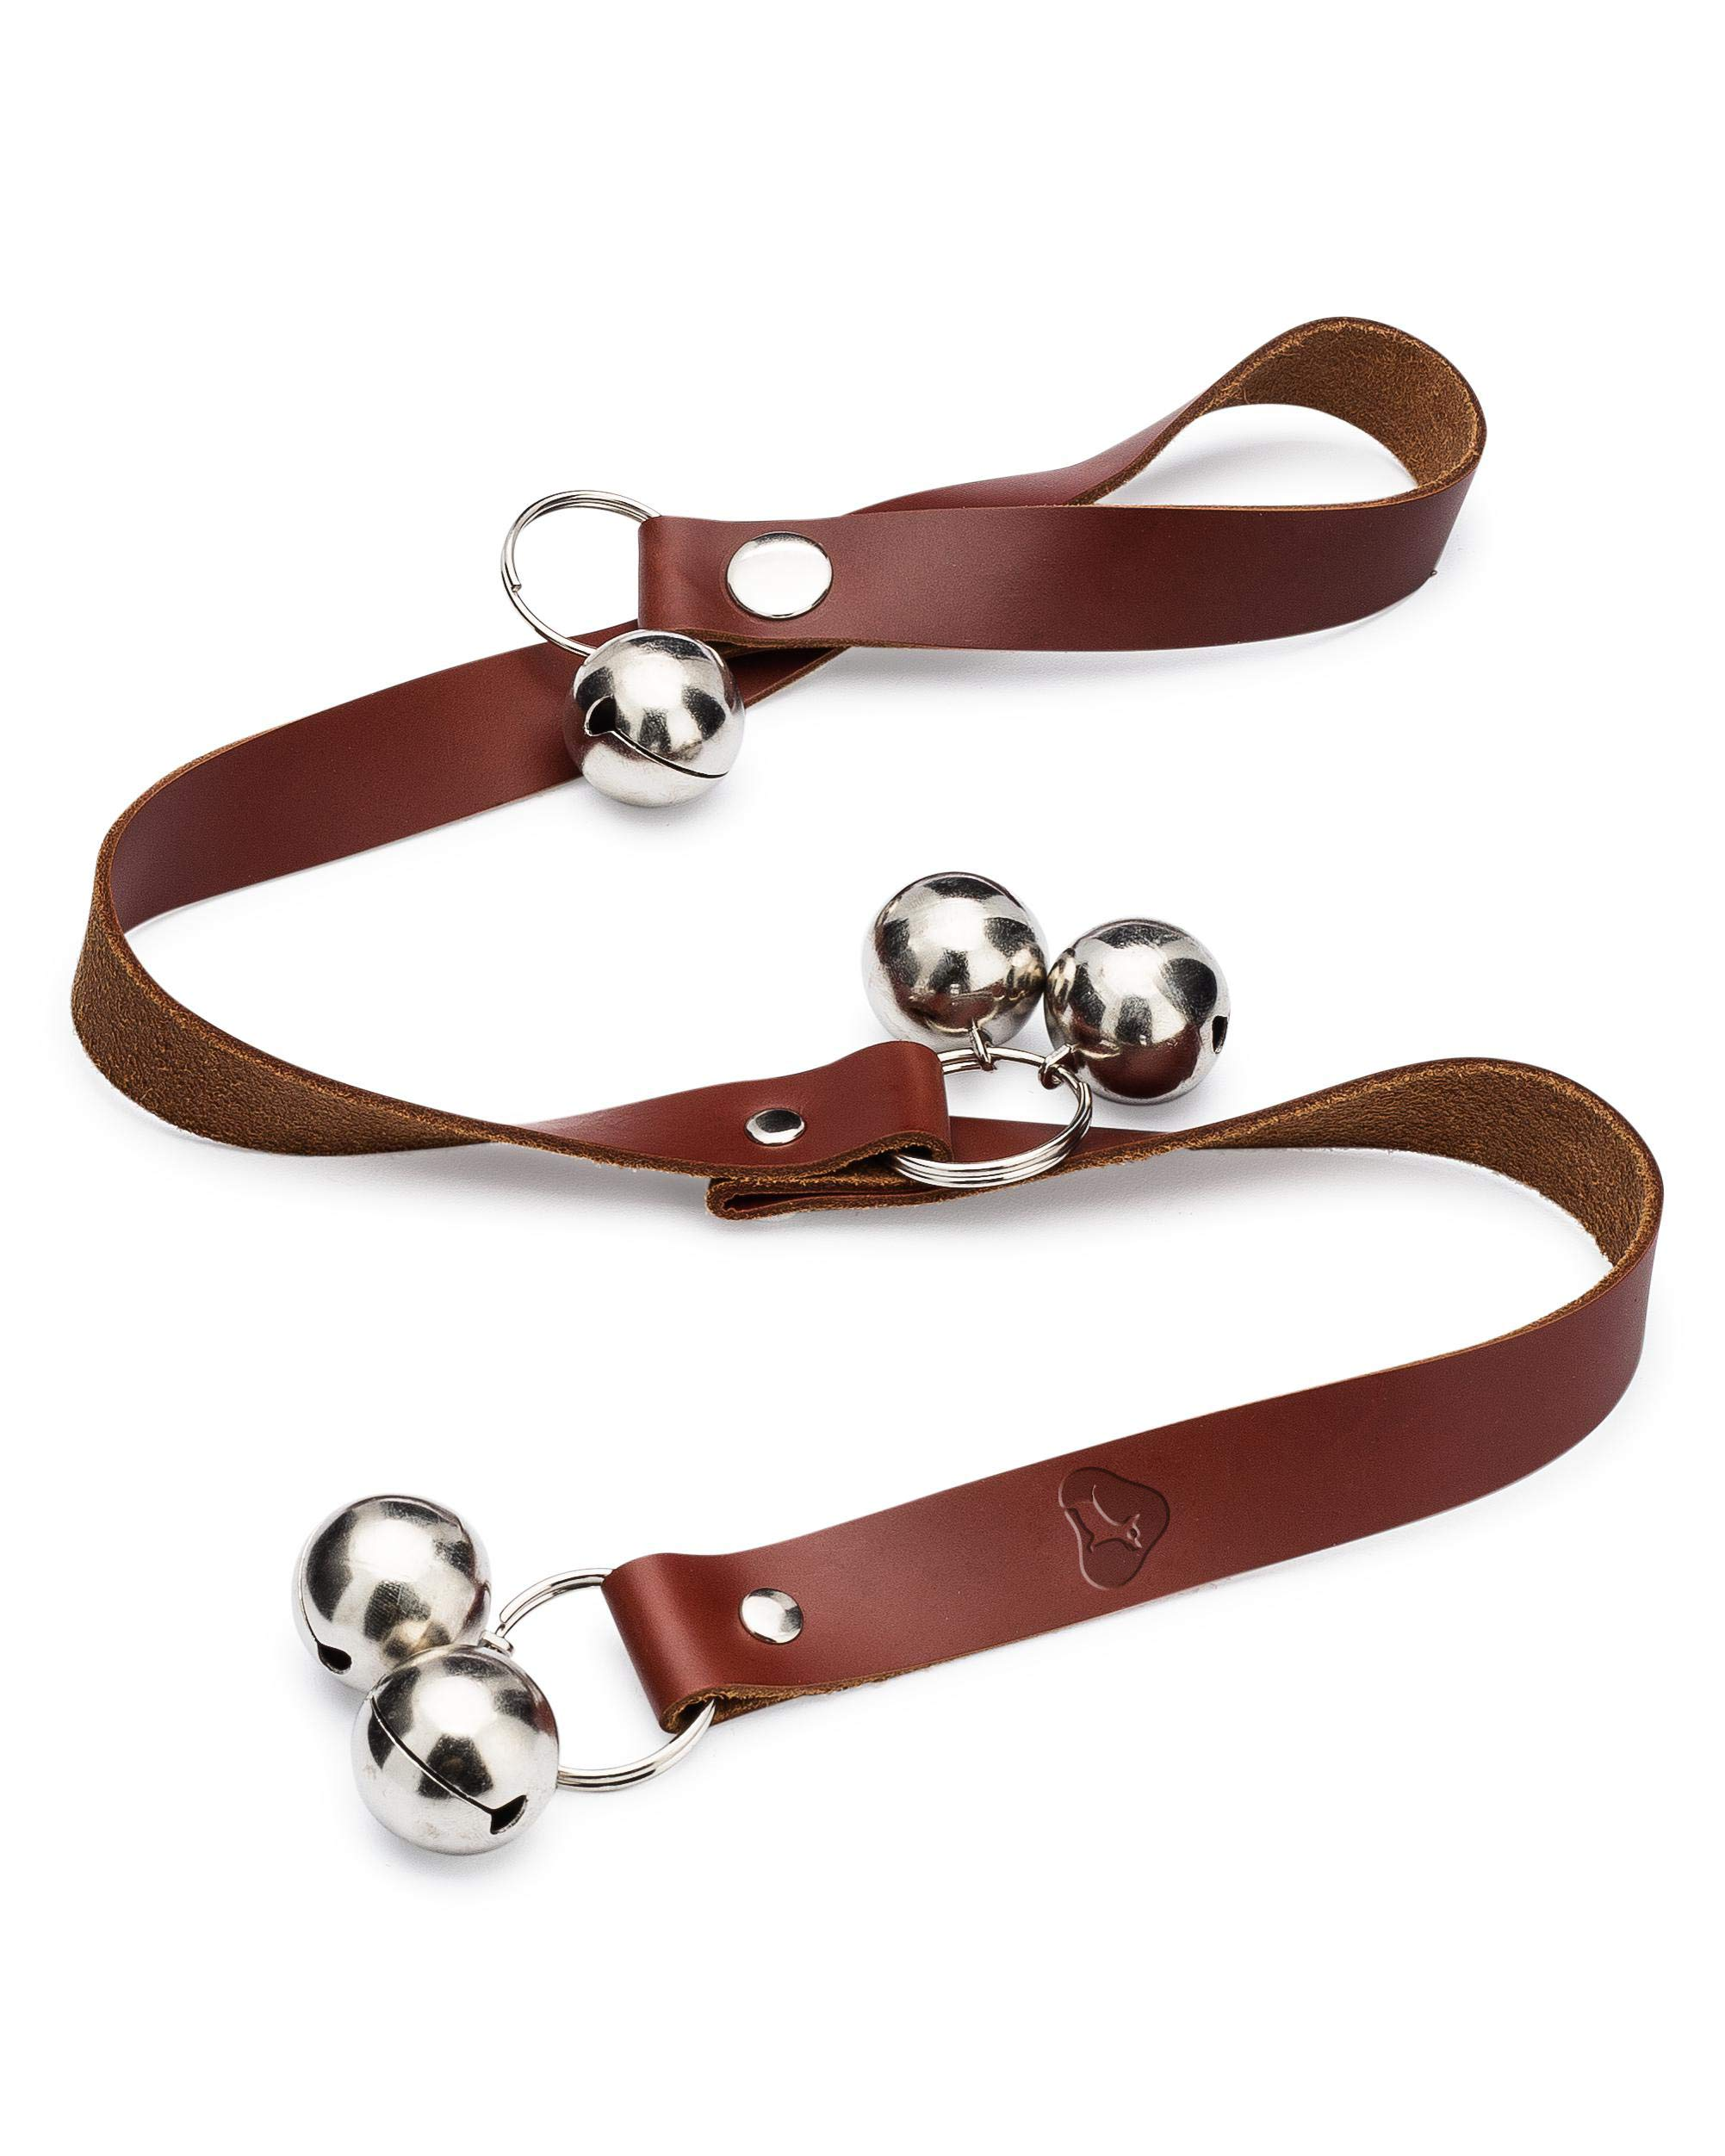 The Dog Goes Ruff Leather Dog Doorbells for Housetraining - Easy to Hear Door Bells for Housebreaking and Training Your Puppy - Instructions Included